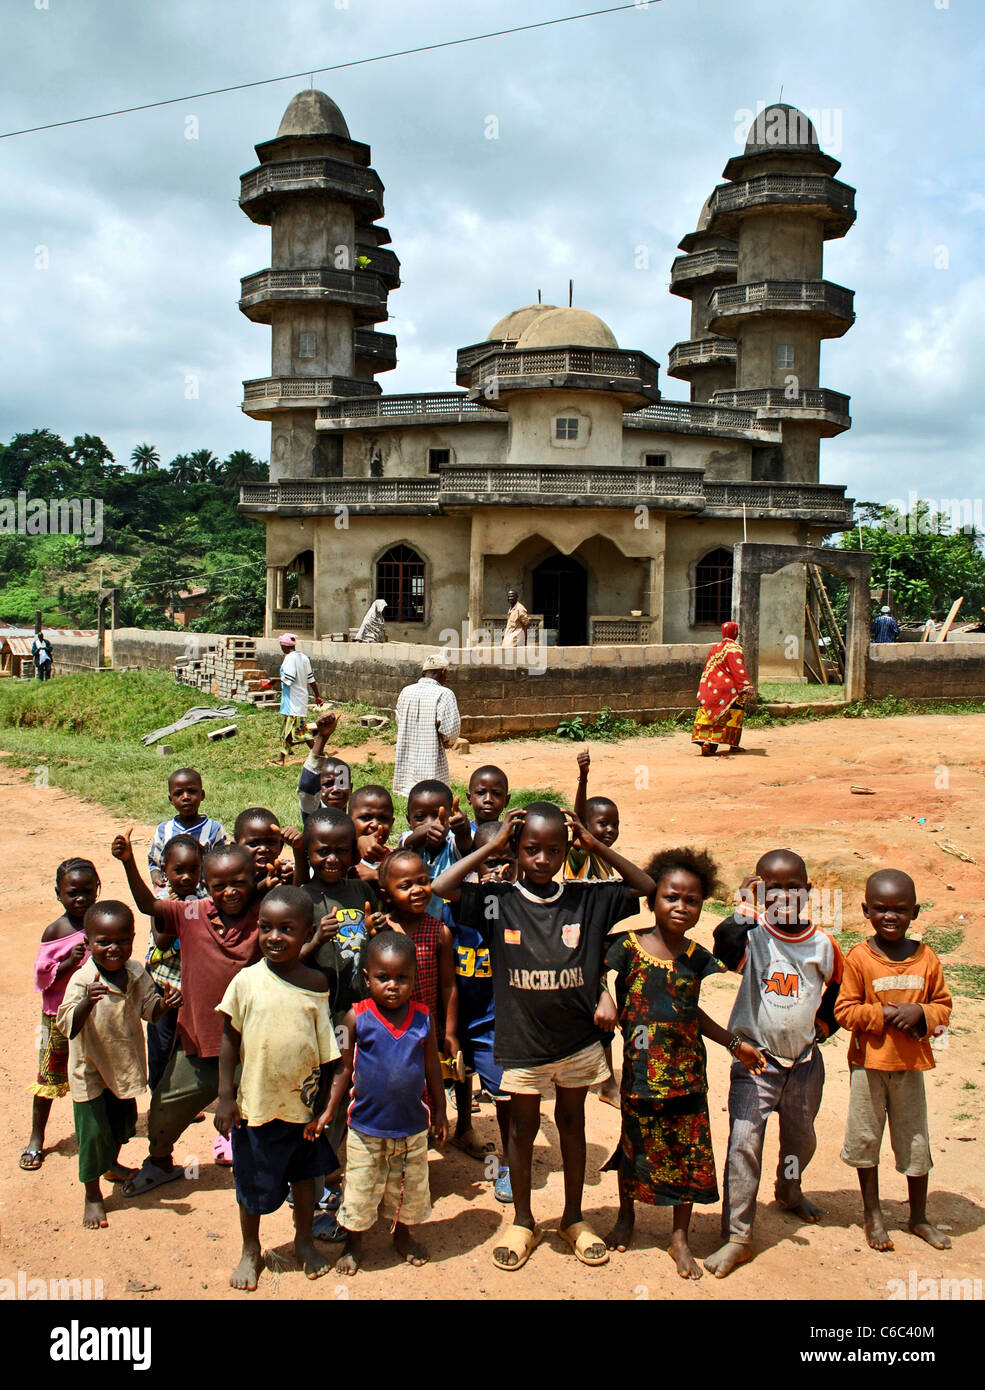 Liberian children and mosque in a small village near Bolahun, Liberia, West Africa - Stock Image